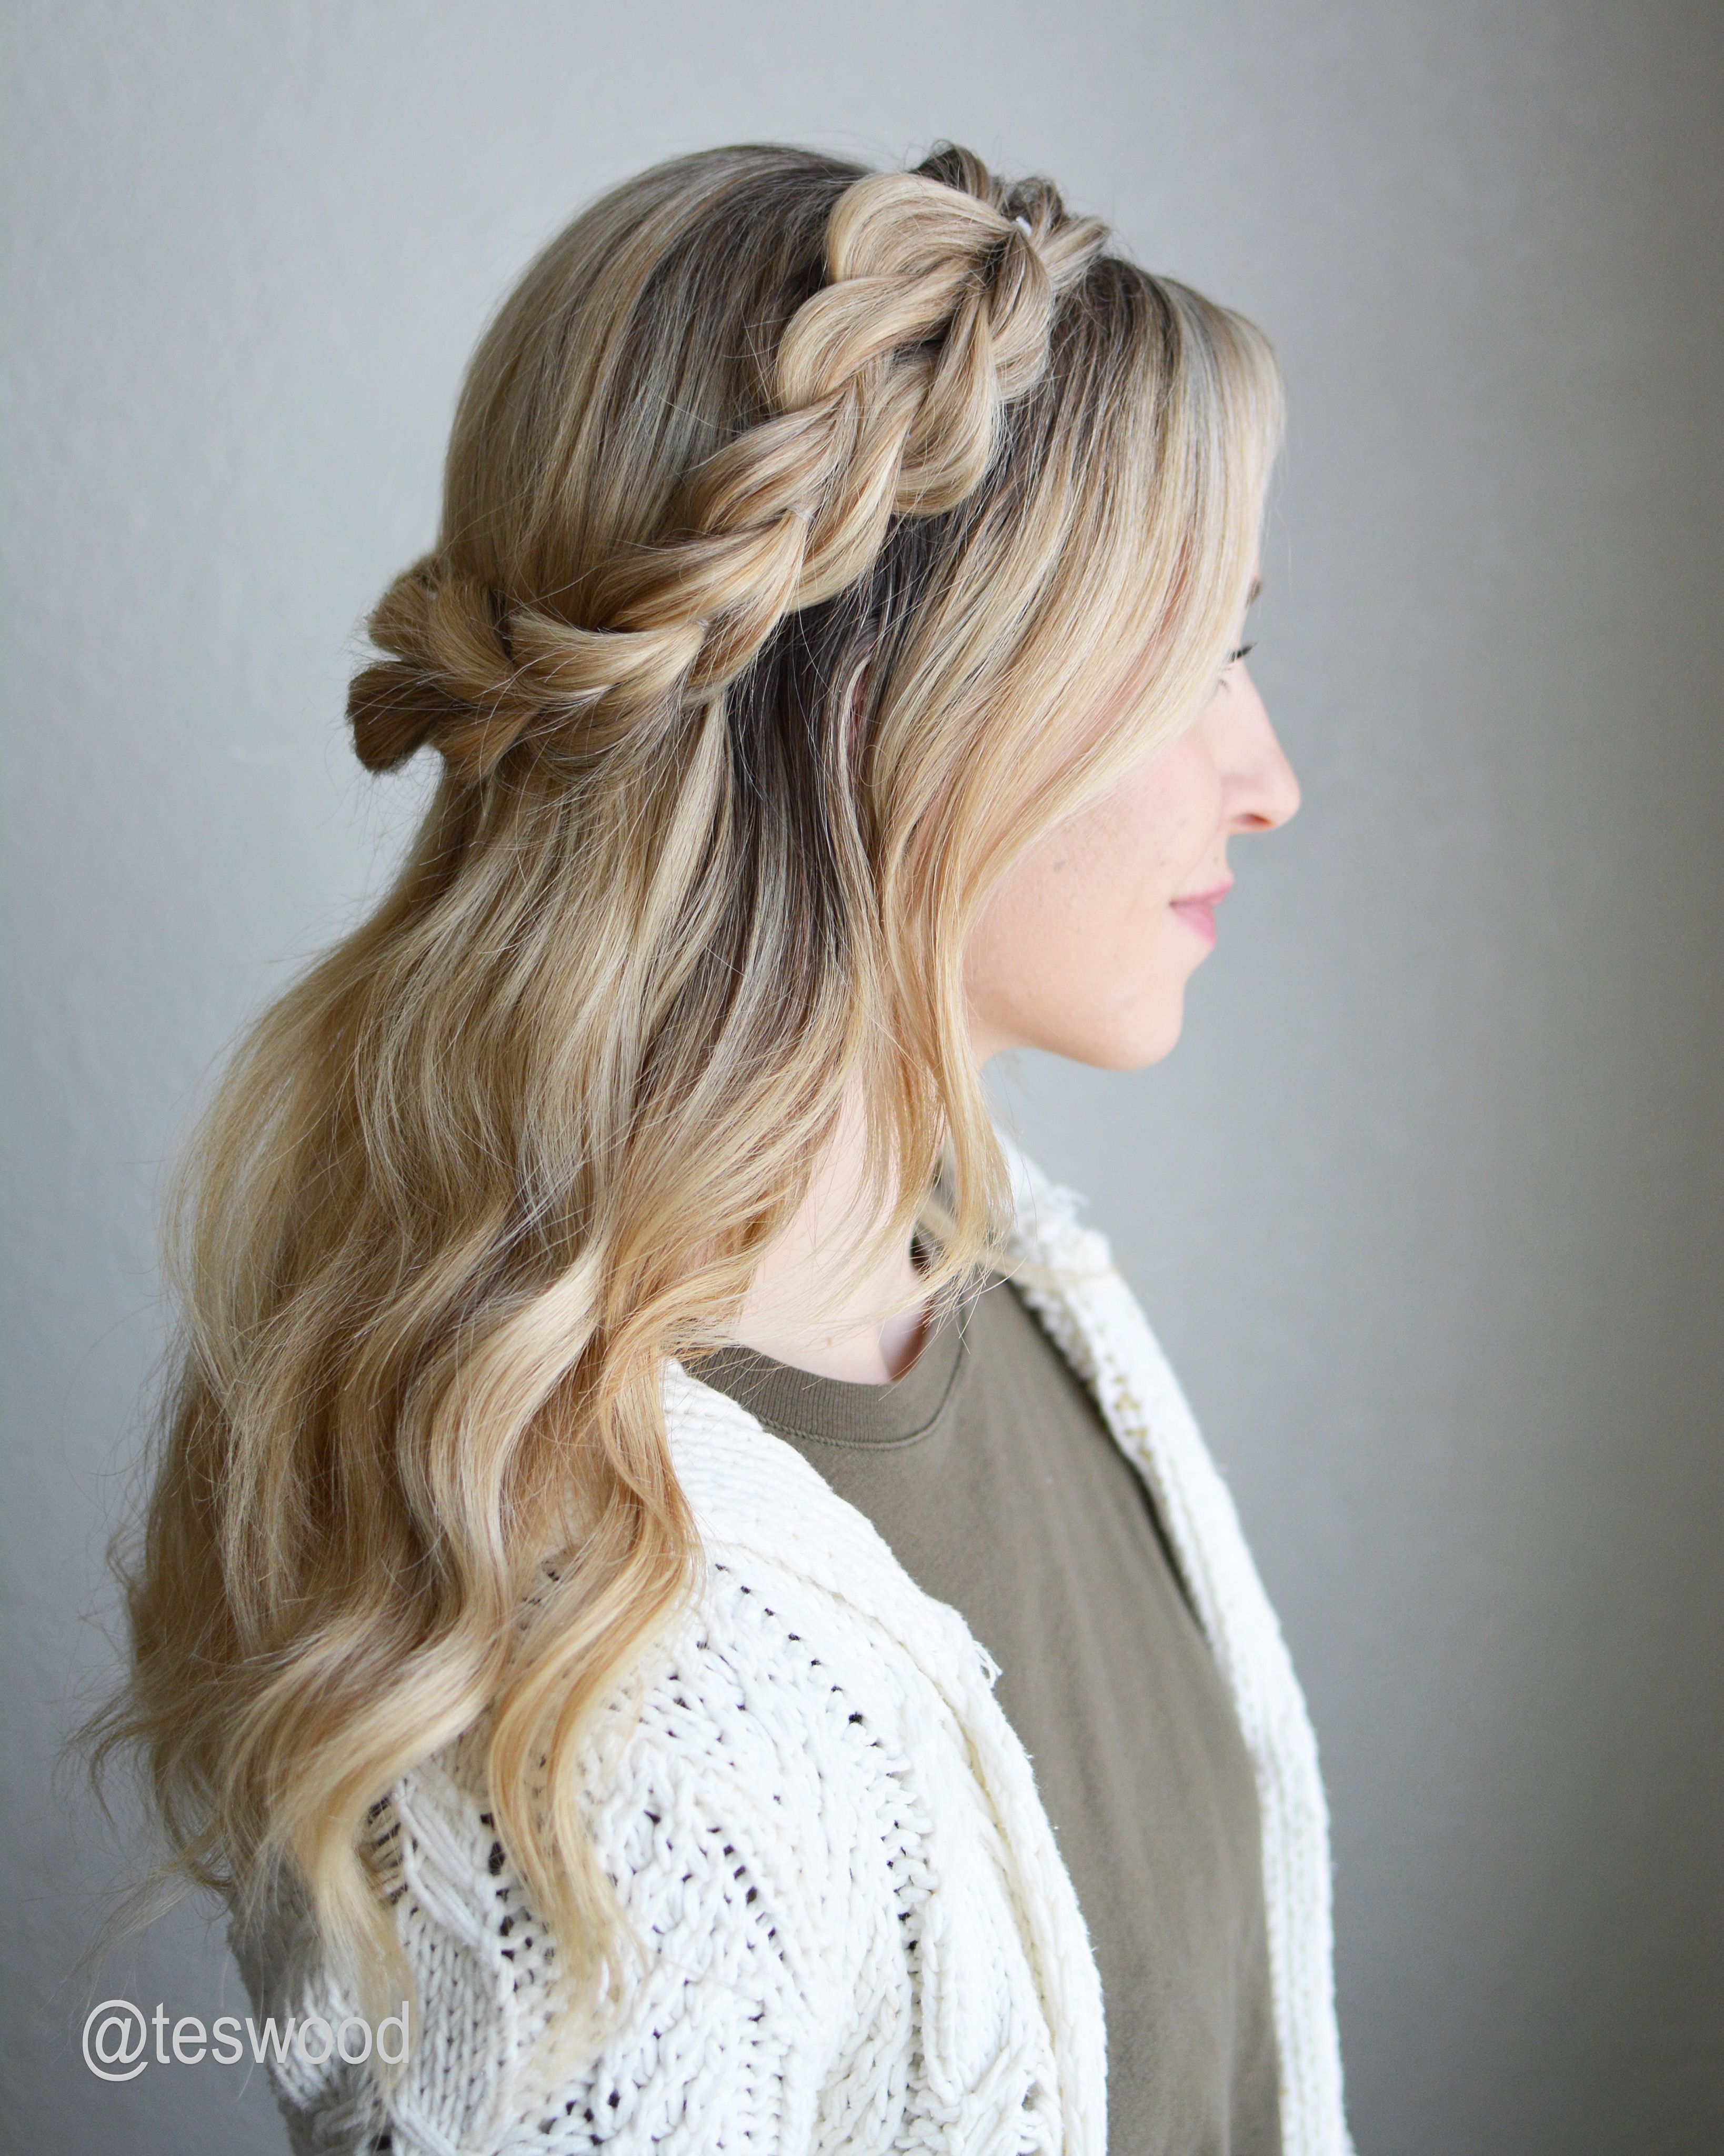 Best Hairstyle For Women Braided Crown Hairstyles Stylish Hair Braided Hairstyles